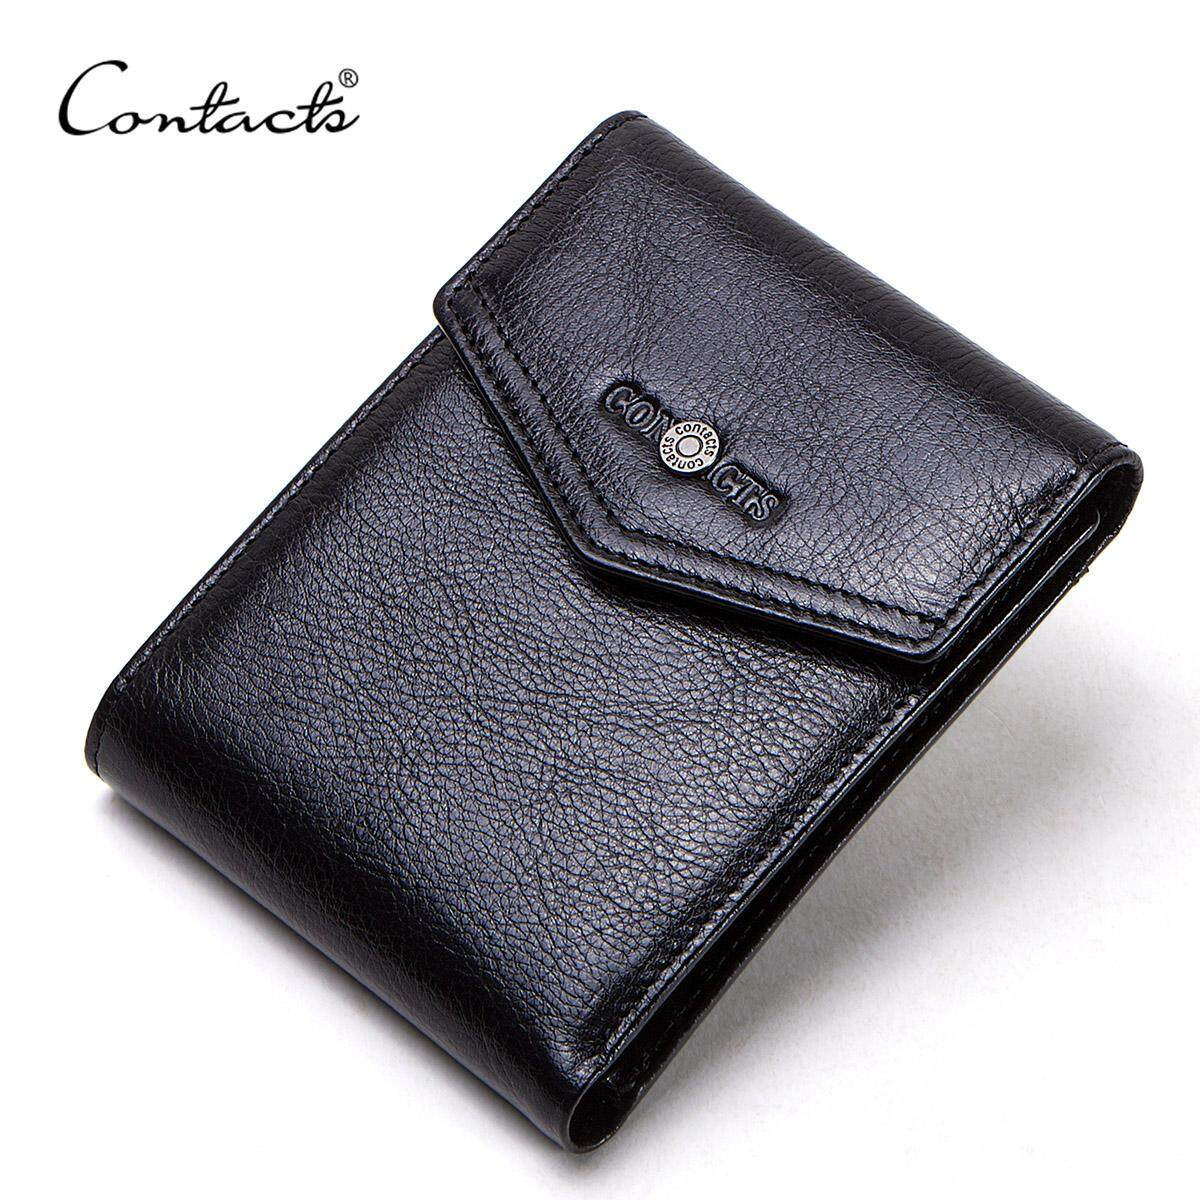 CONTACTS 100% Genuine Leather Wallets Short Trifold Men Wallet Quality Coin Purse Card Holder Small Money Bag for Man